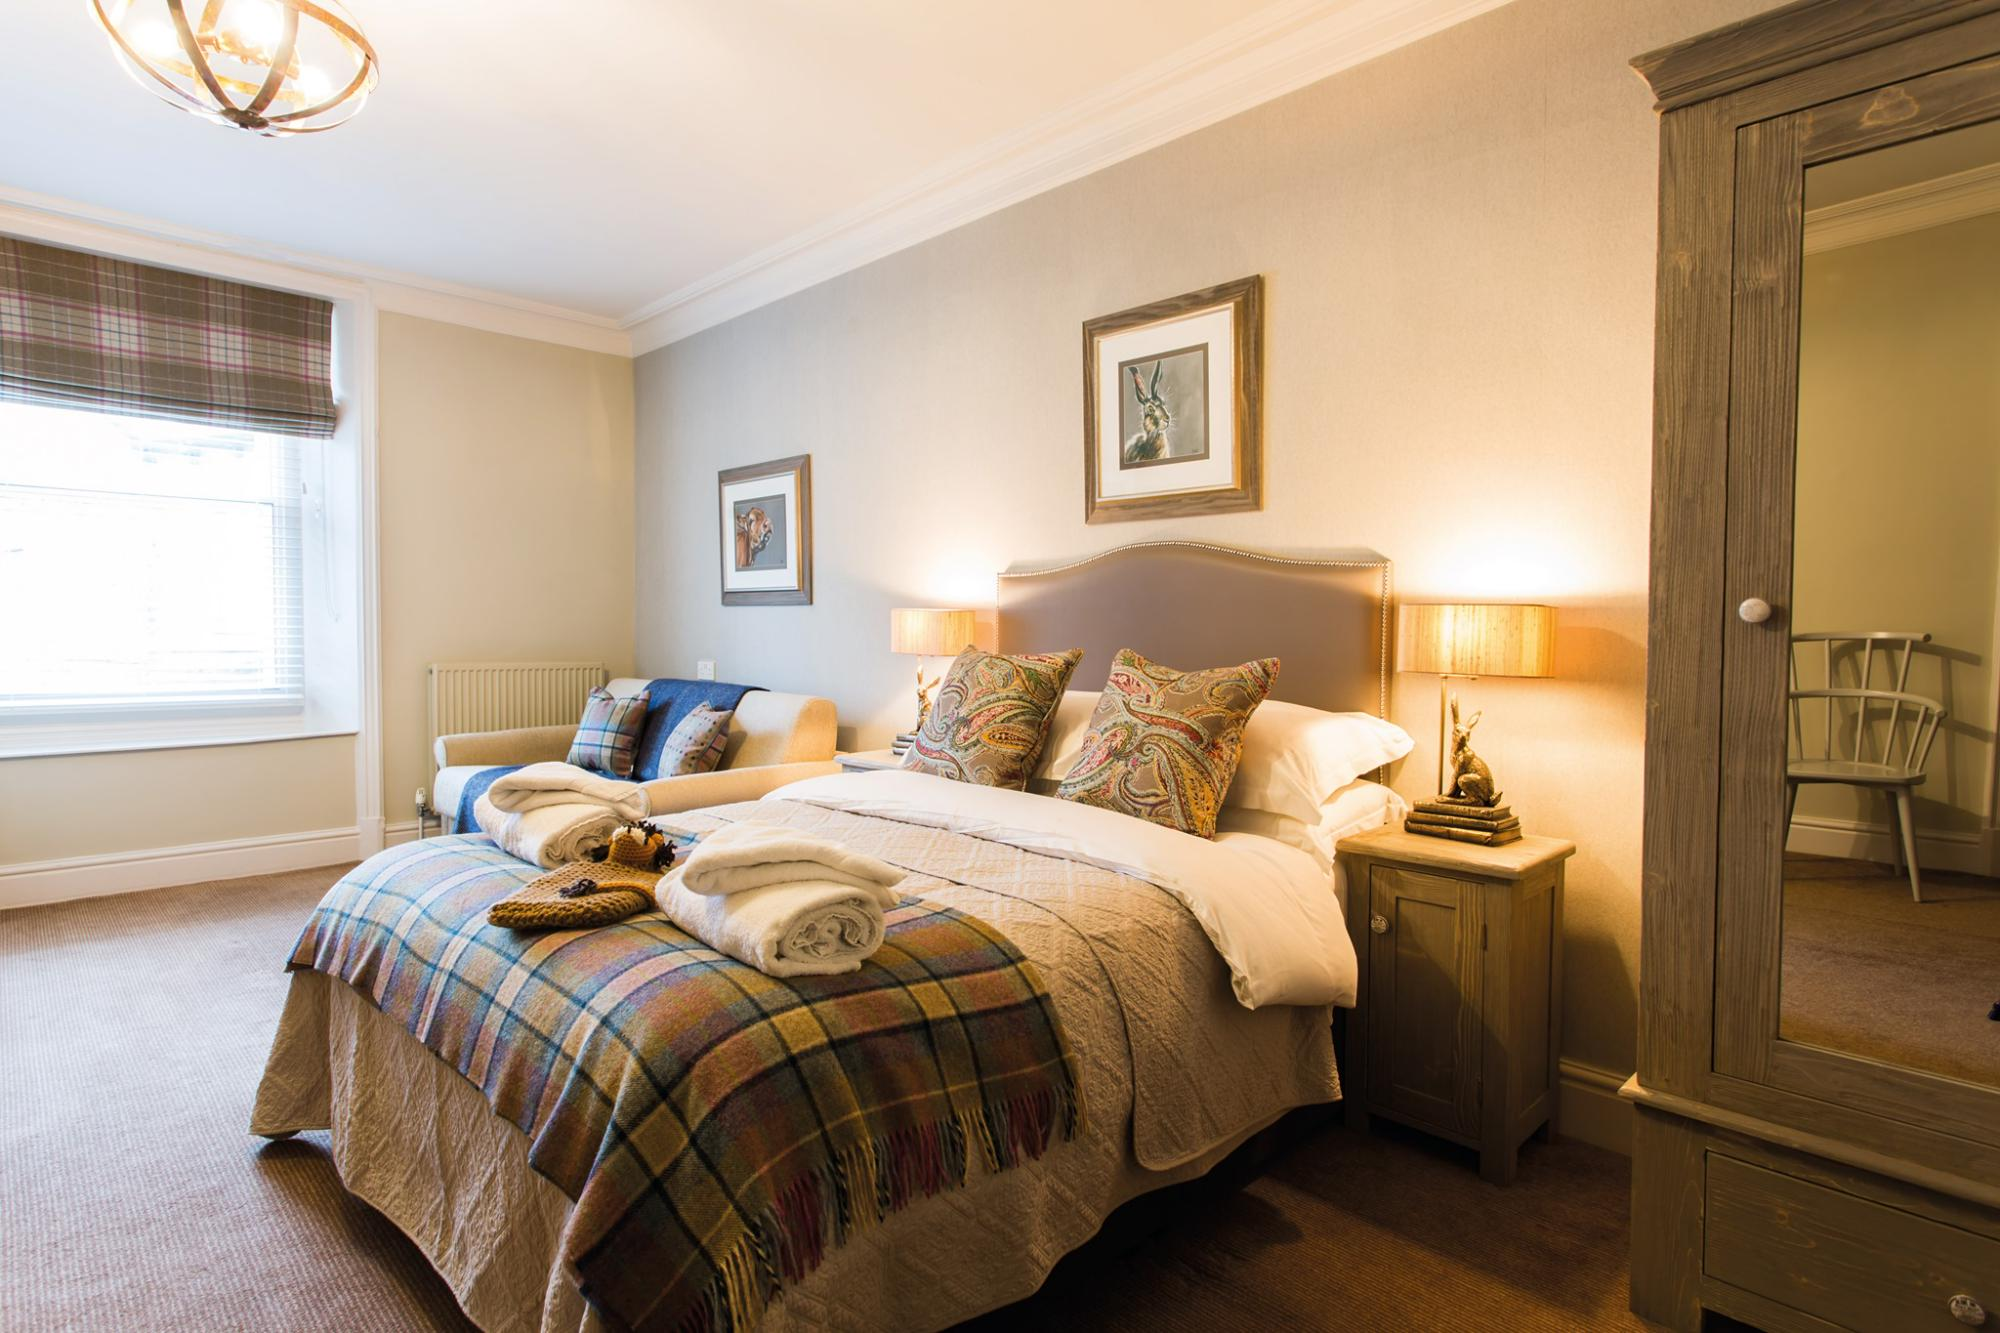 Hotels in Settle holidays at Cool Places